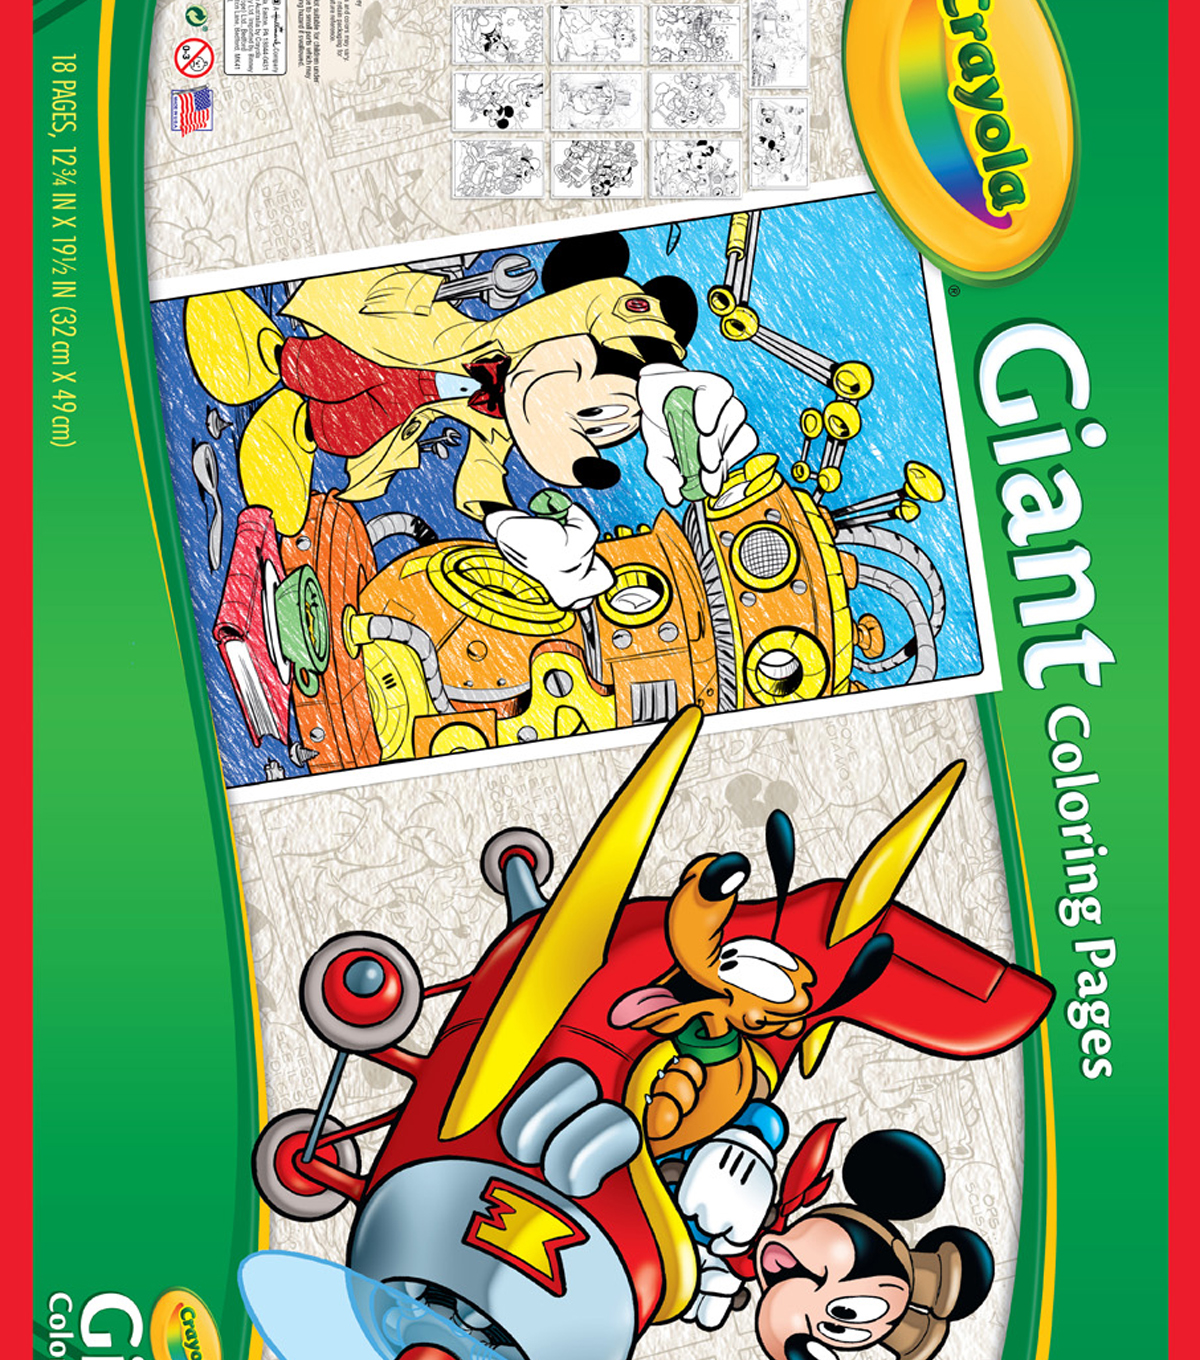 Crayola Giant Coloring Pages-Mickey's 90th | JOANN